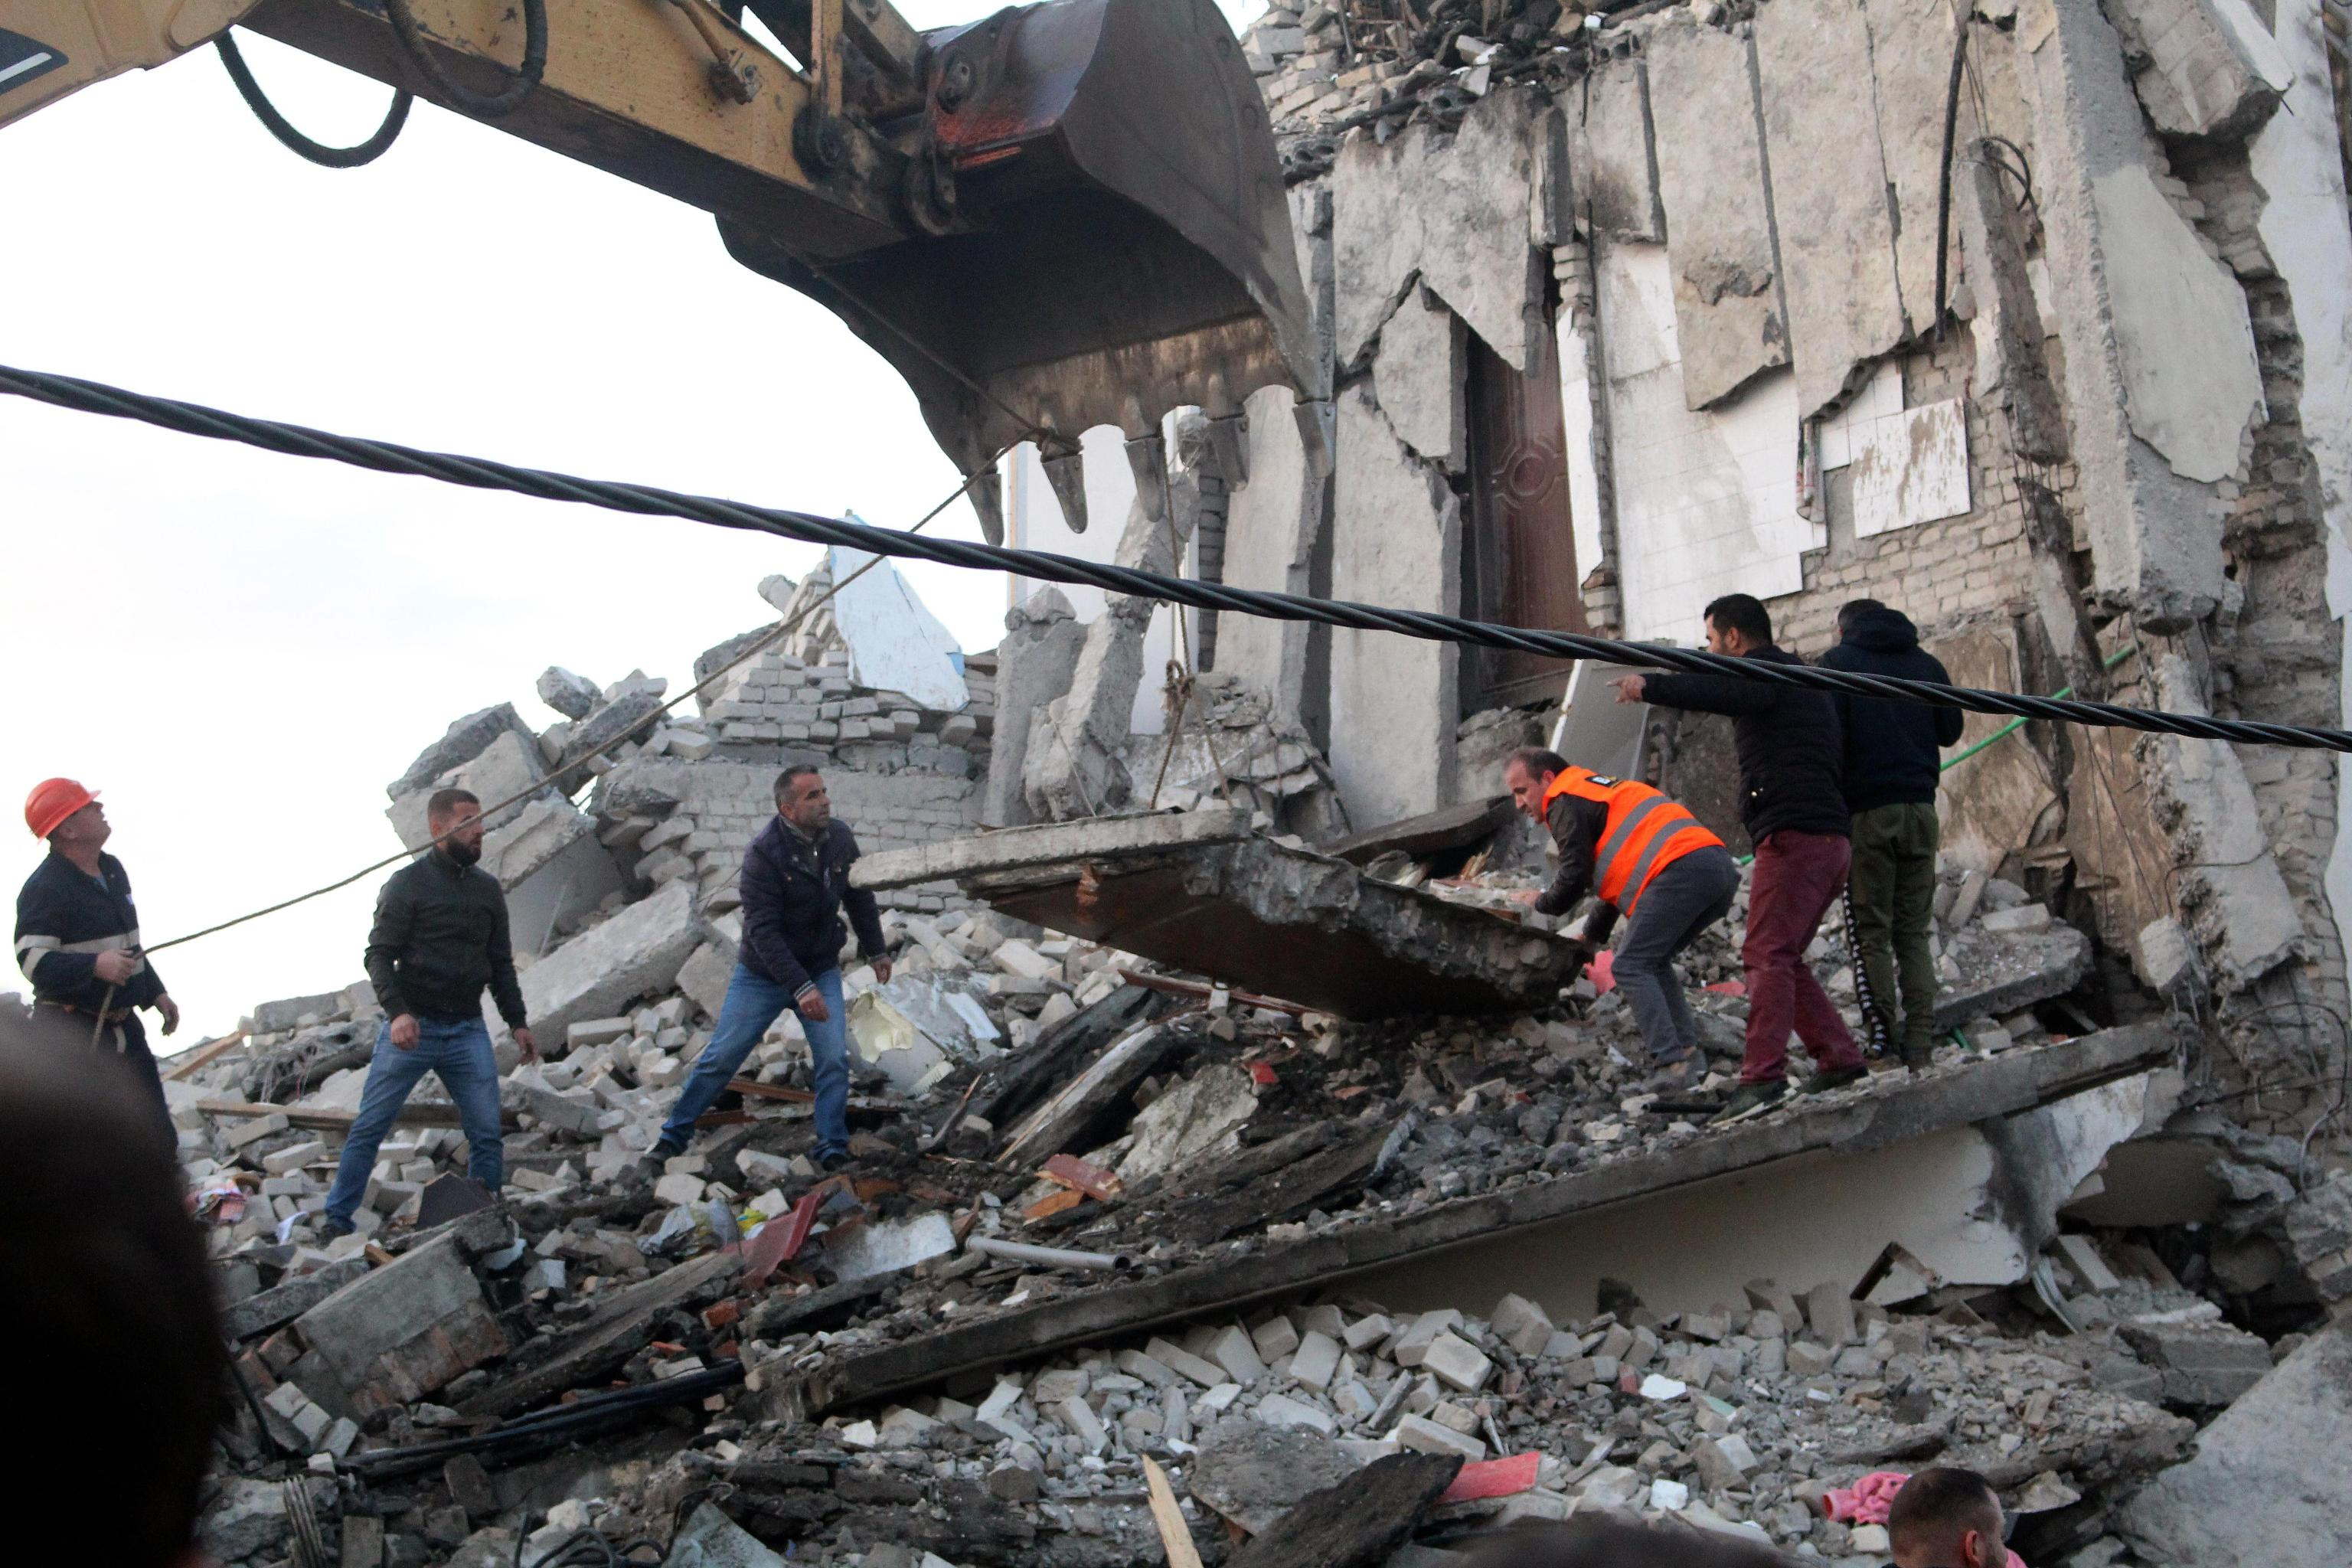 epa08025882 People search for survivors in the rubble of a building after an earthquake hit Thumane, Albania, 25 November 2019. Albania was hit by a 6.4 magnitude earthquake on 26 November 2019, leaving three people dead and dozens injured.  EPA/MALTON DIBRA